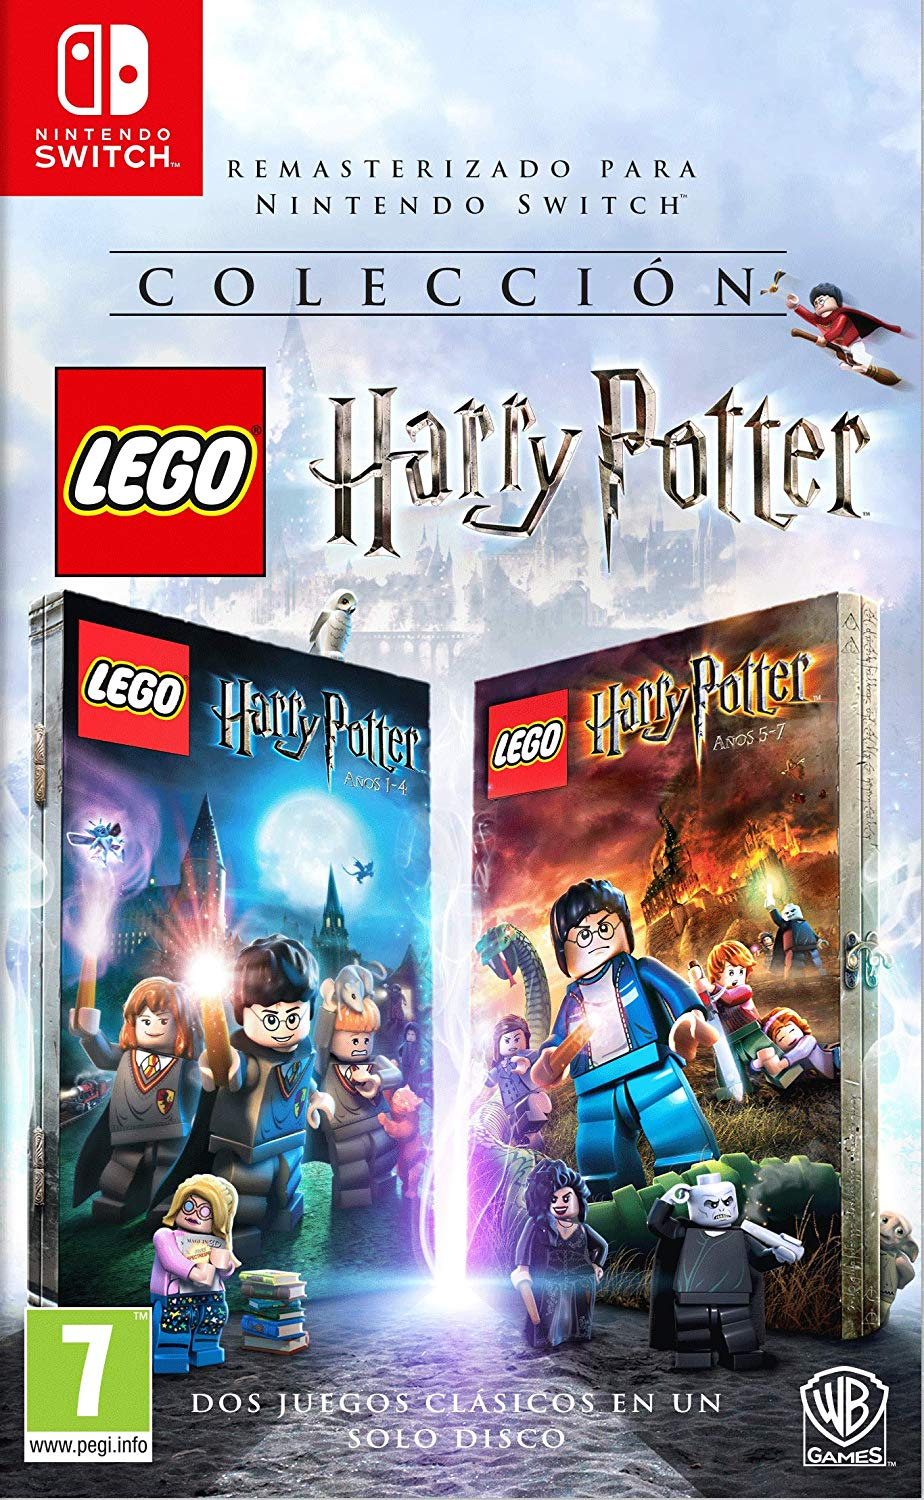 Lego Harry Potter Collection imagen